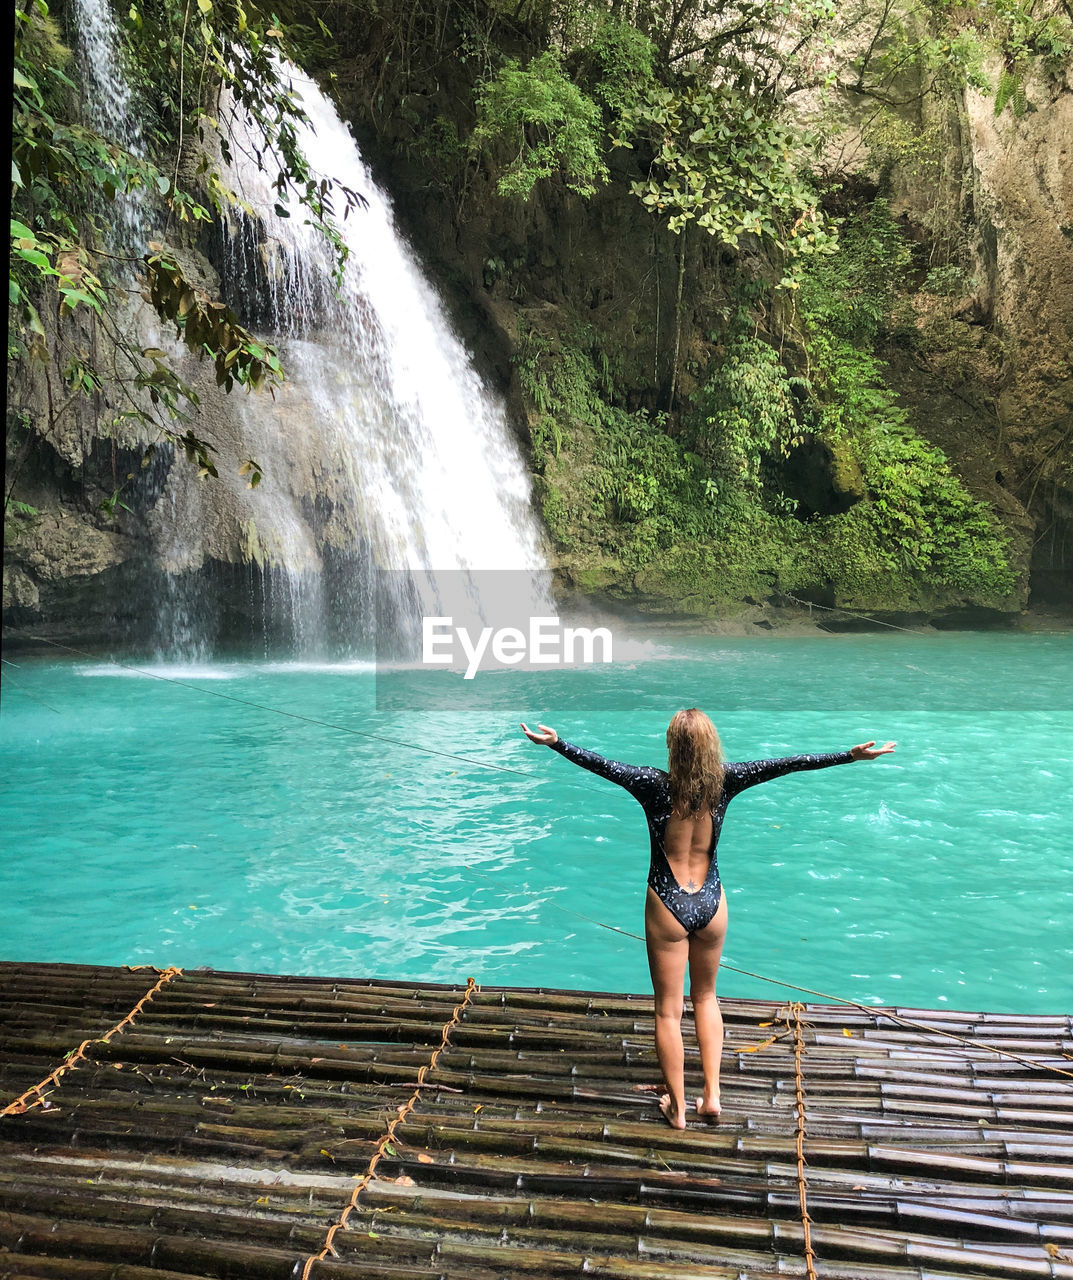 water, one person, beauty in nature, waterfall, real people, scenics - nature, human arm, leisure activity, arms outstretched, lifestyles, rear view, young adult, full length, young women, nature, motion, tree, vacations, limb, outdoors, flowing water